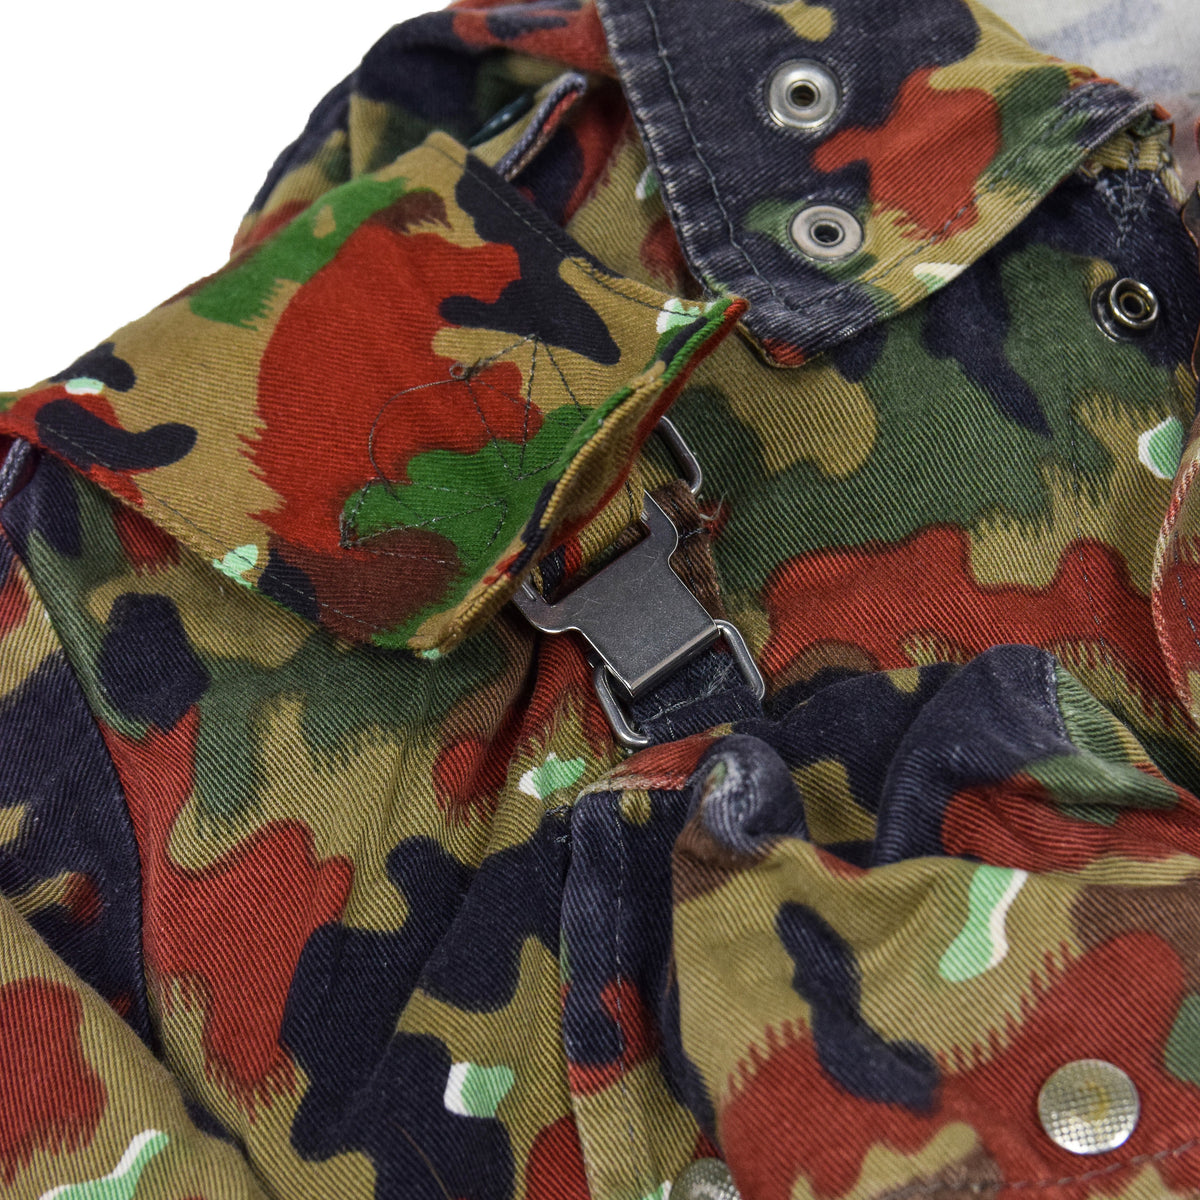 Vintage 70s Swiss Army Alpenflage Camo Sniper Combat Field Jacket M / L fastening